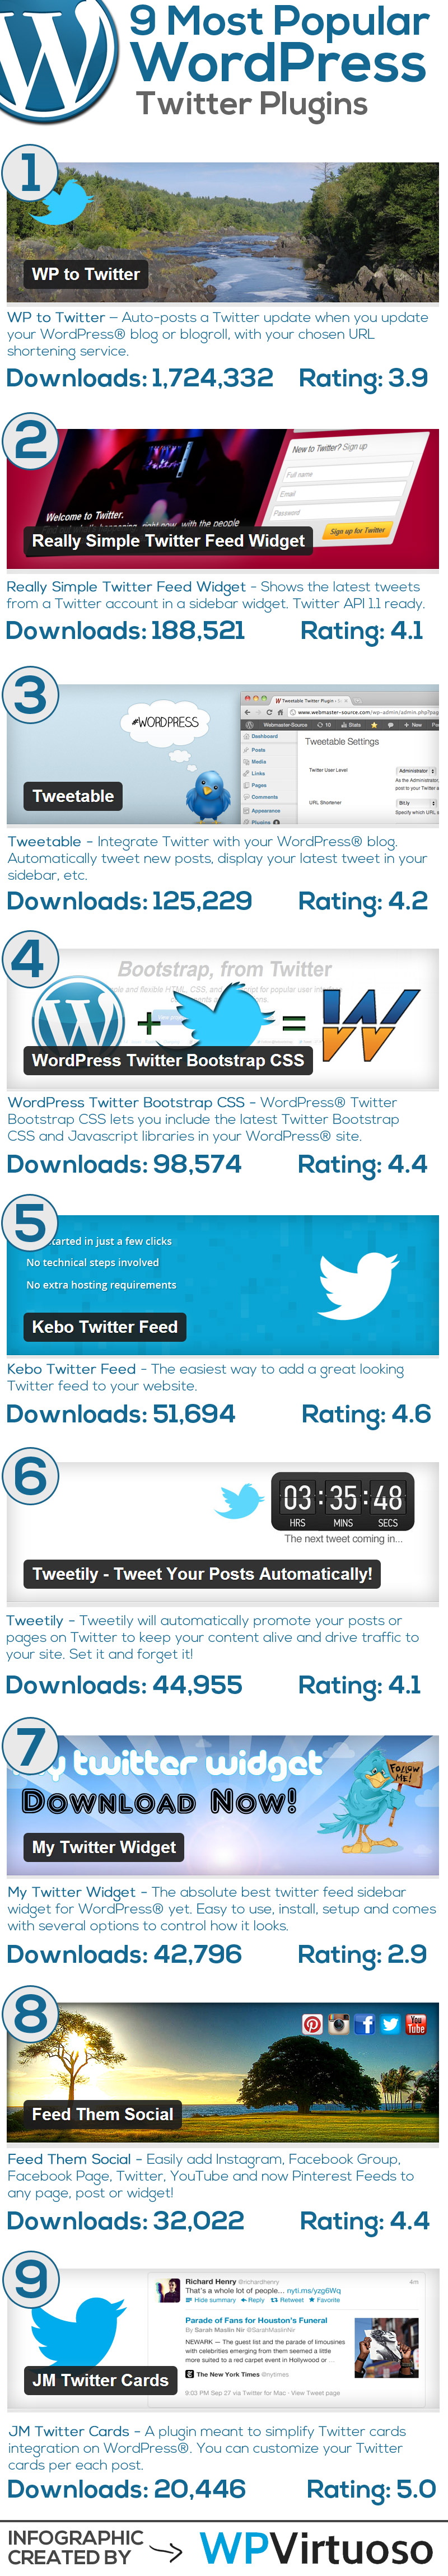 Best-Wordpress-Twitter-Plugins-Infographic